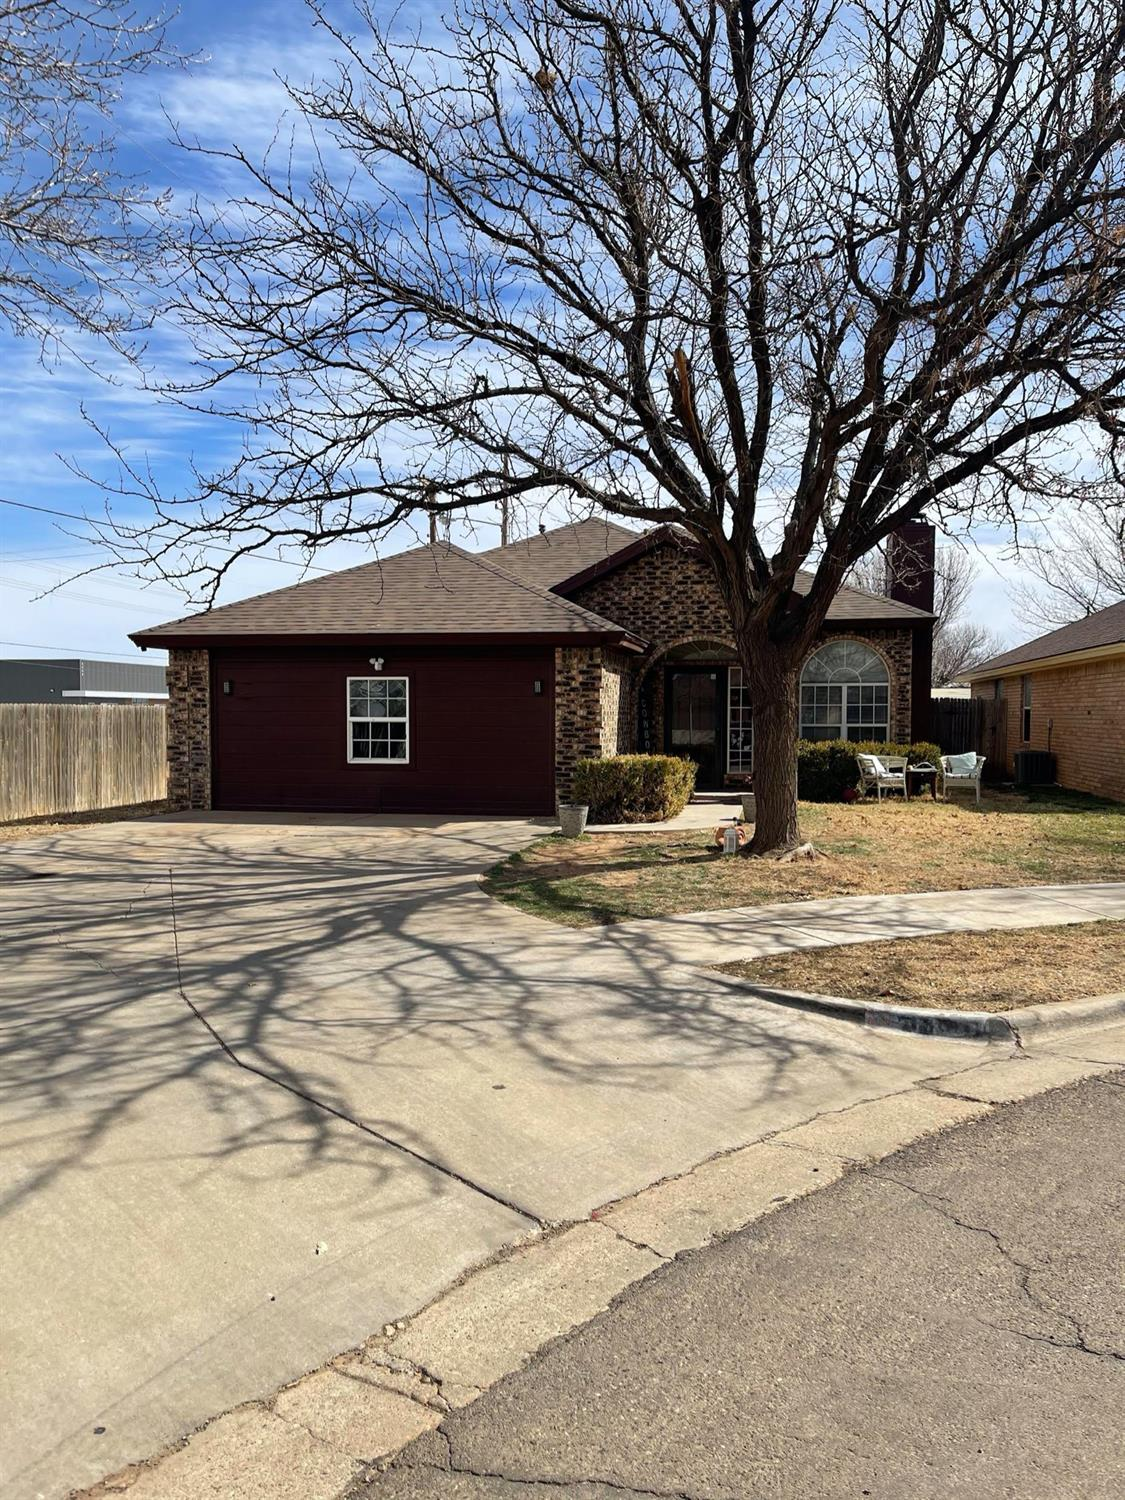 Come and check out this 4/2 in Frenship school district. This home features high ceilings, gas fireplace, isolated master with a beautifully updated bathroom and more. This home has a lot of space and will. not disappoint! Call your favorite realtor today!!